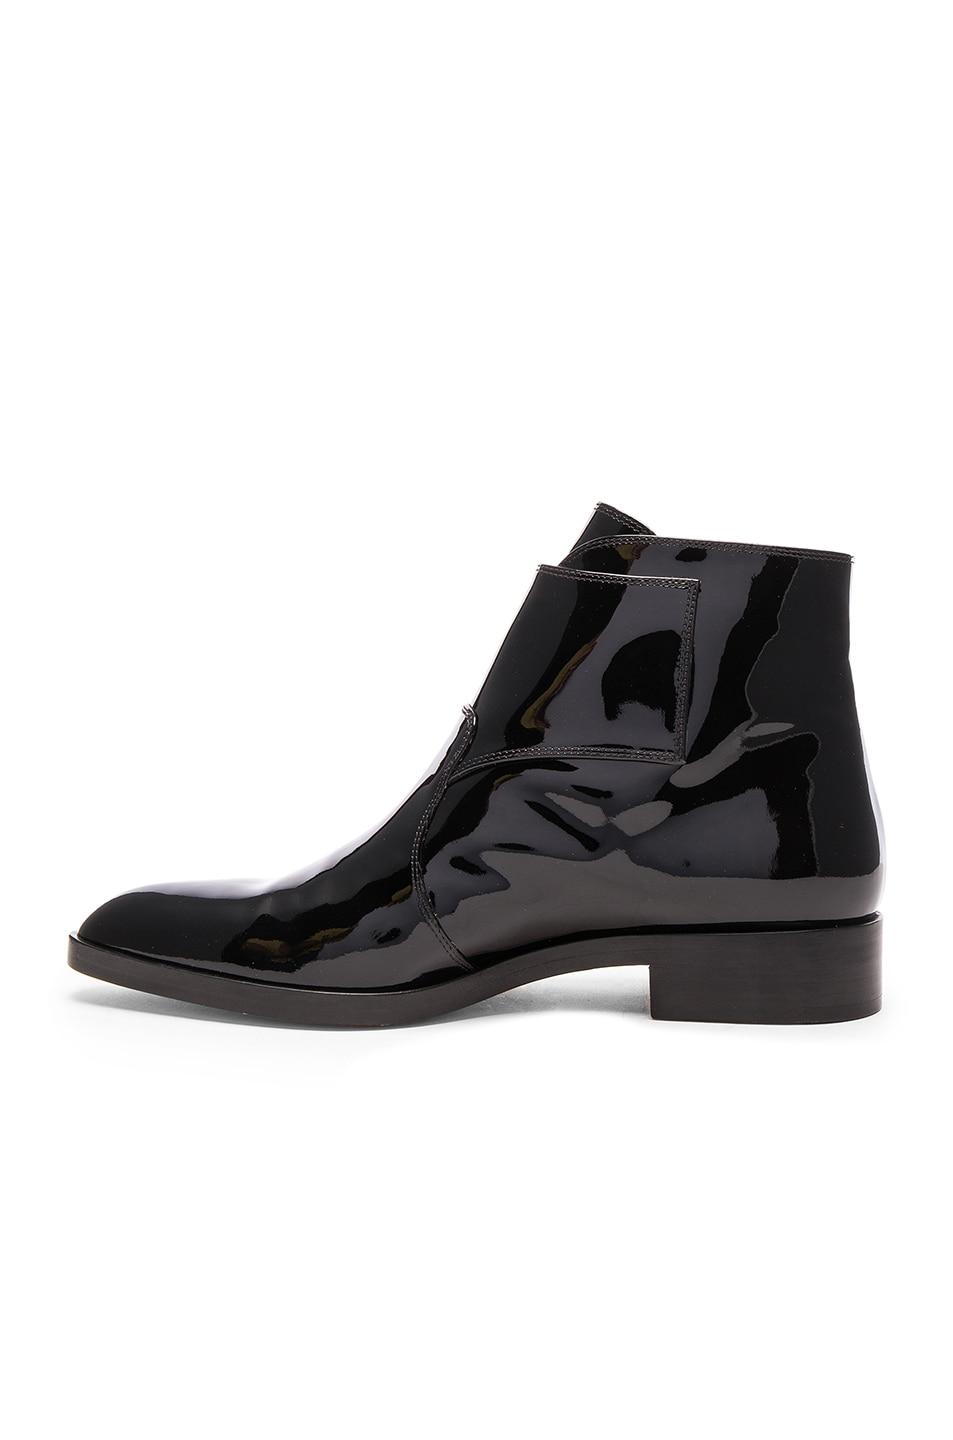 Image 5 of Gianvito Rossi Patent Leather Boots in Black